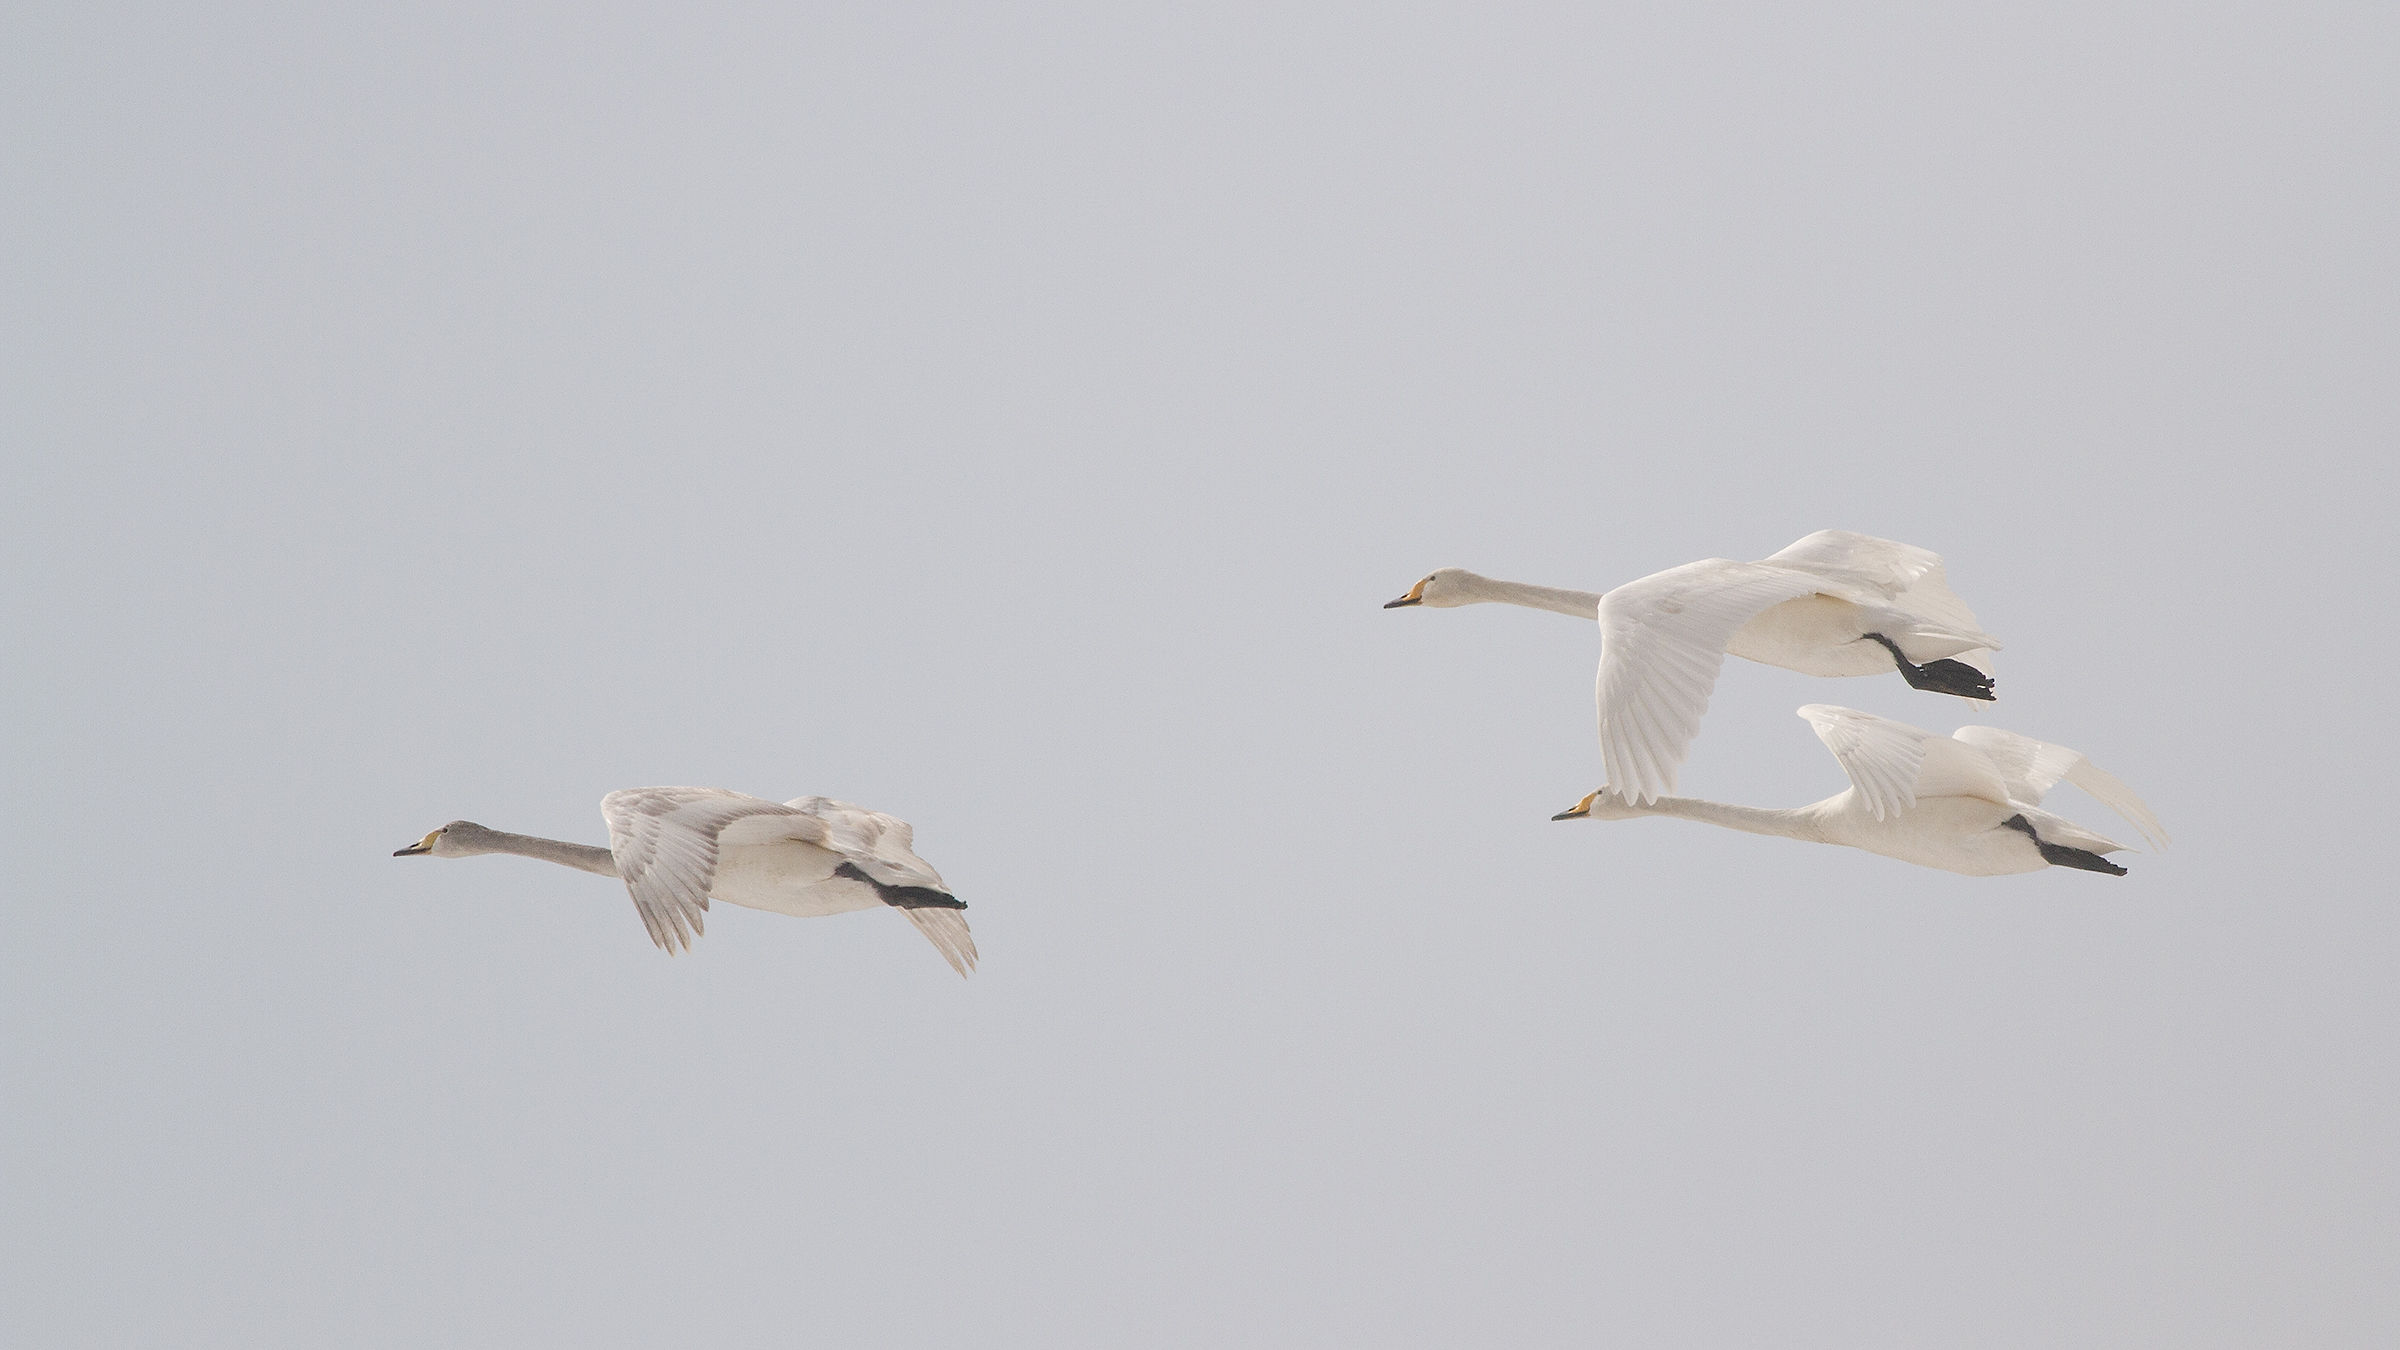 flying swans on a foggy day...